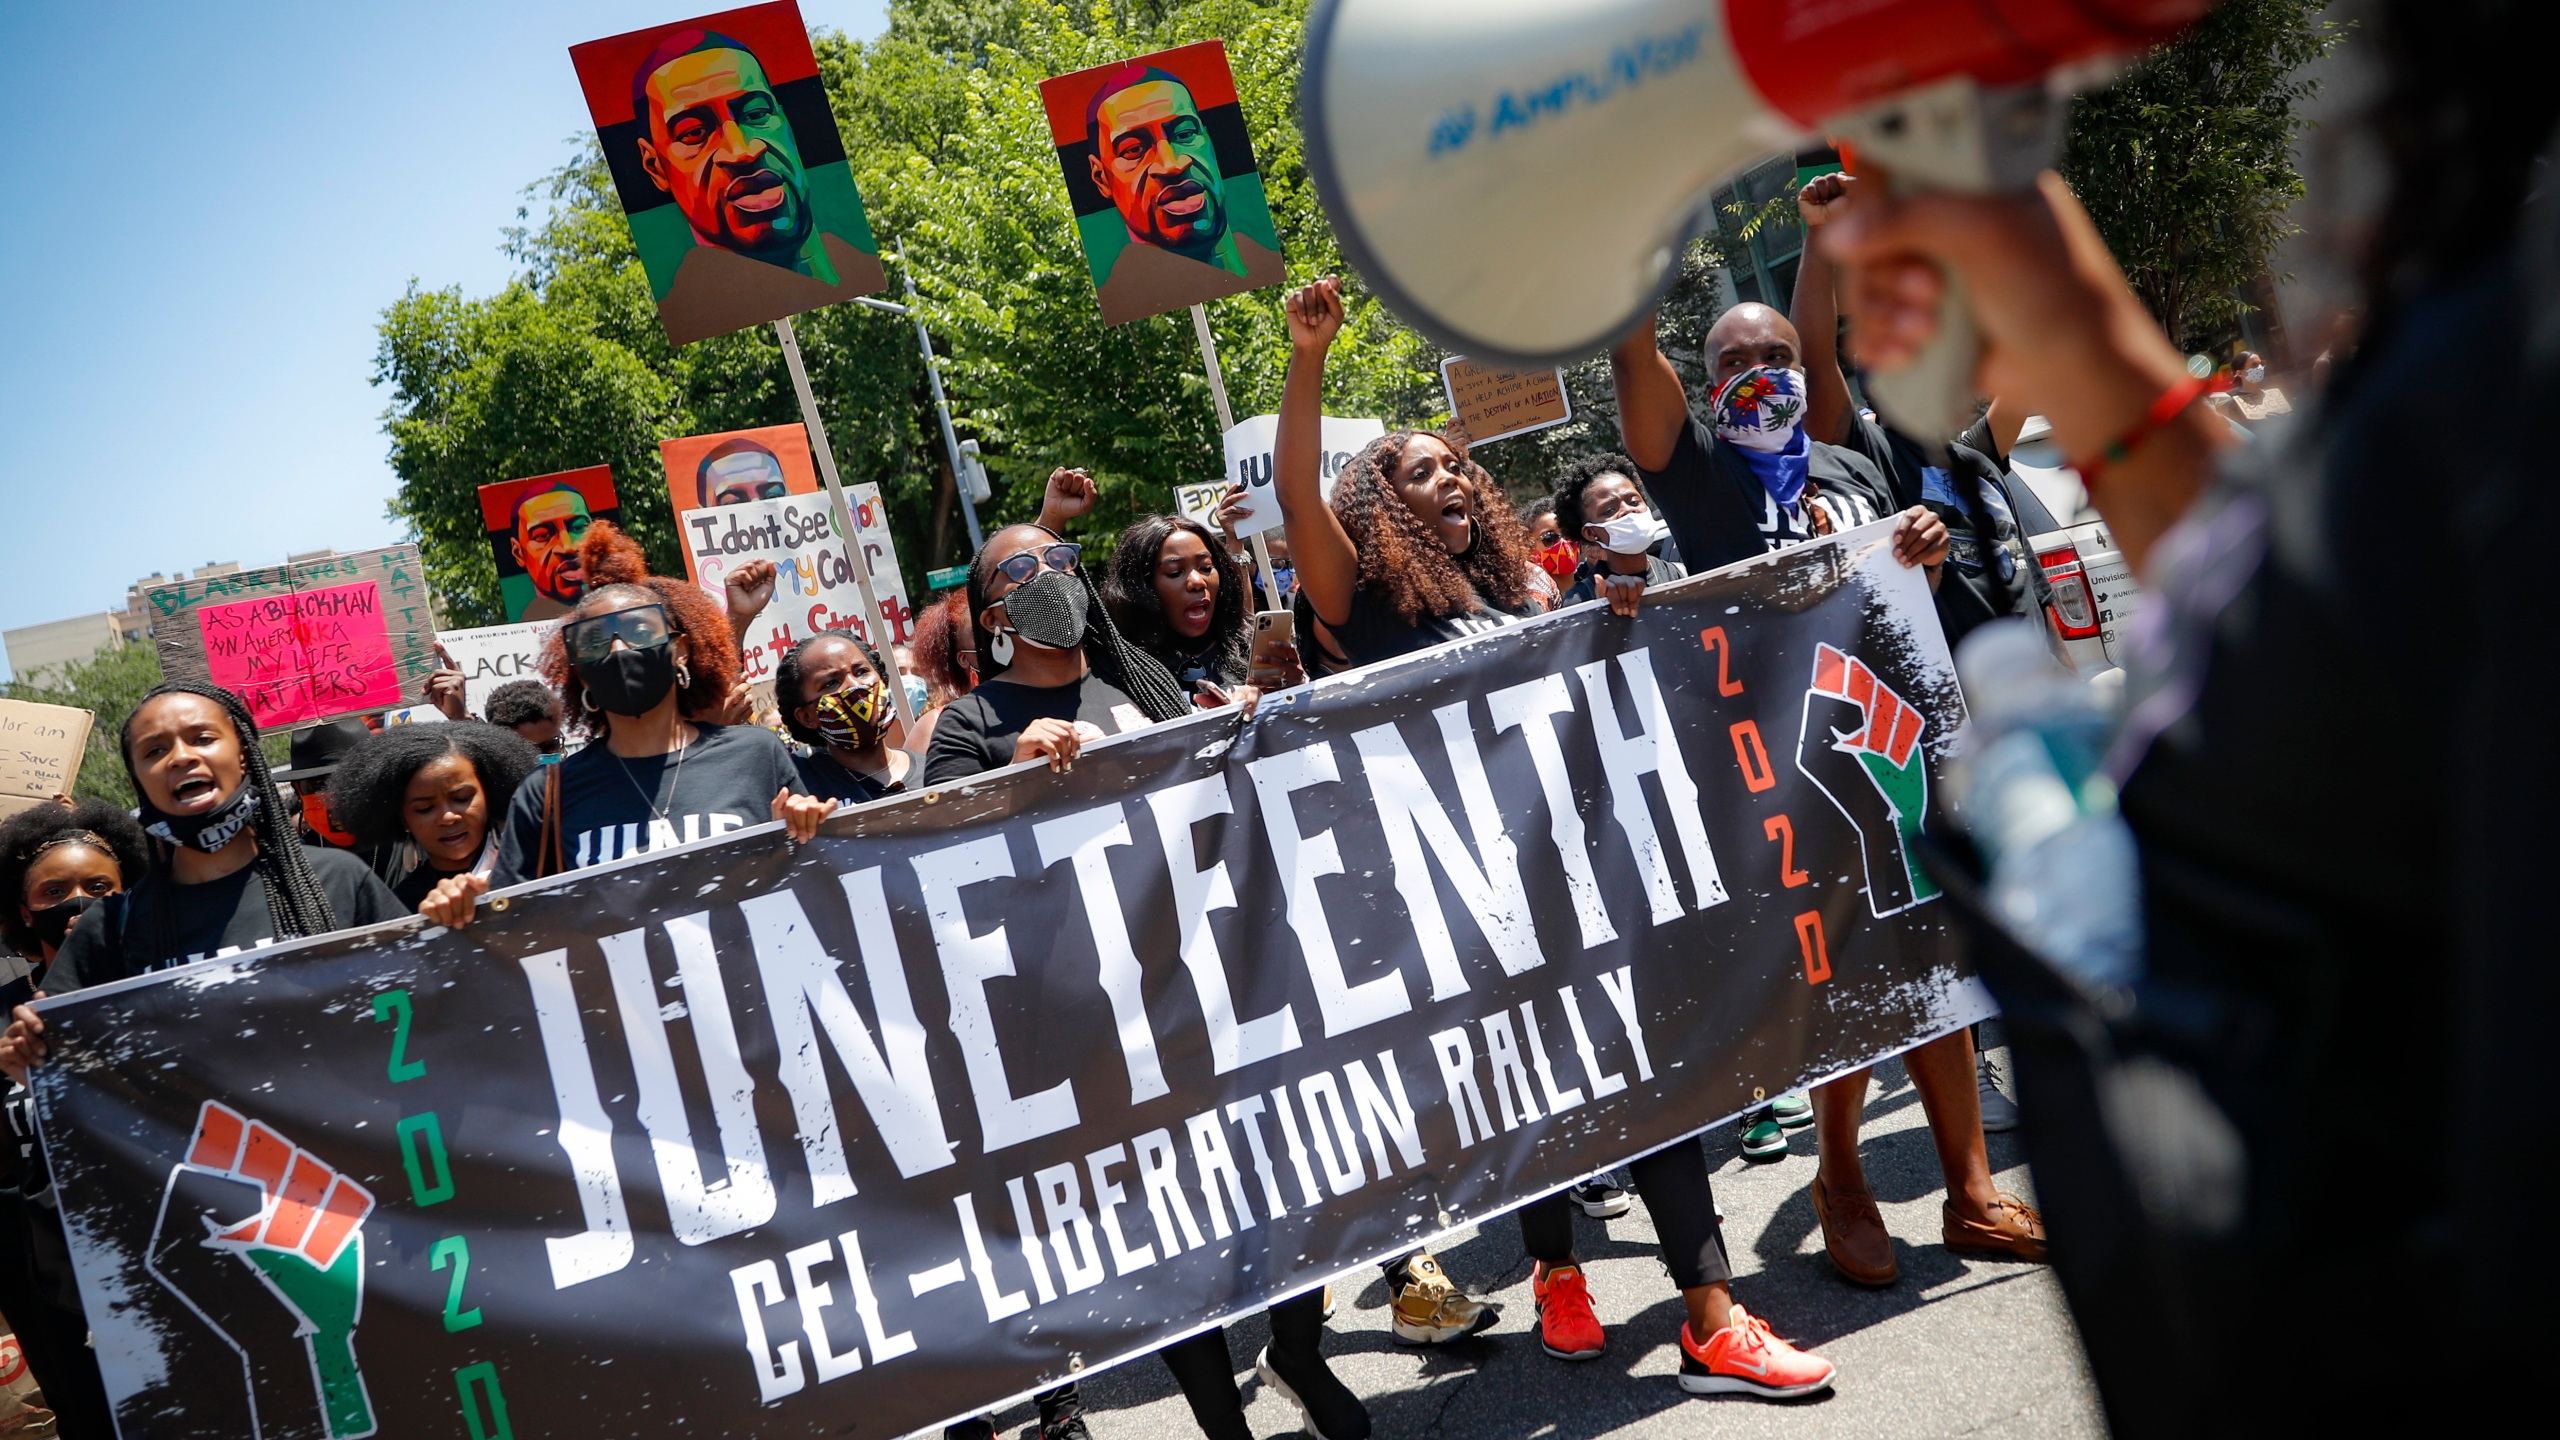 In this June 19, 2020, file photo, protesters chant as they march after a Juneteenth rally at the Brooklyn Museum. (John Minchillo/Associated Press)